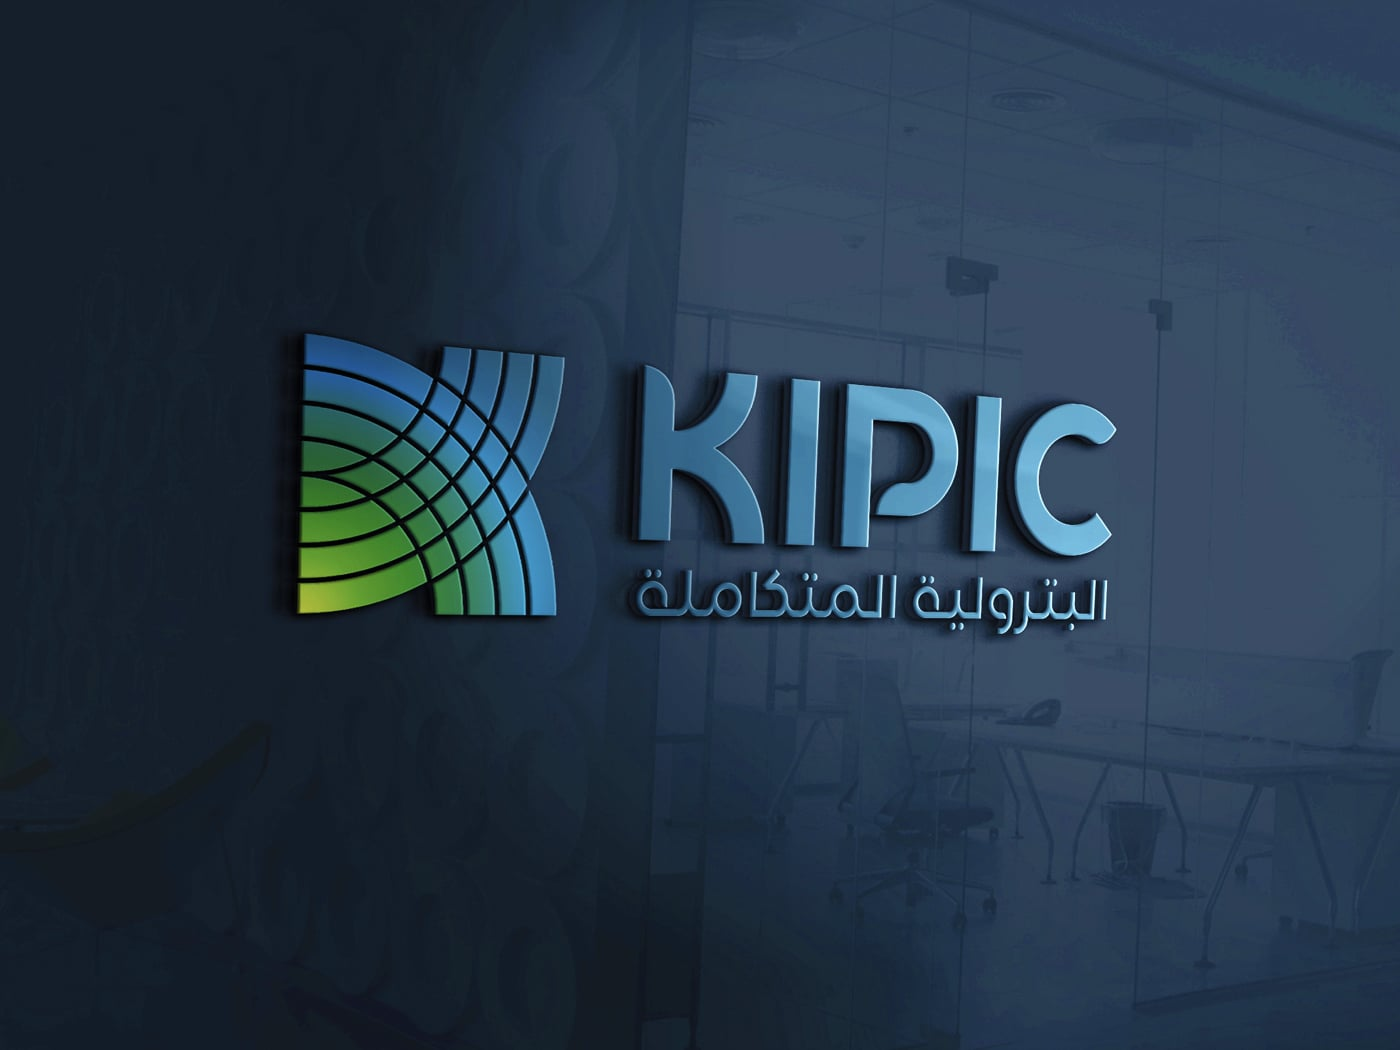 KIPIC - Bellwether Brands